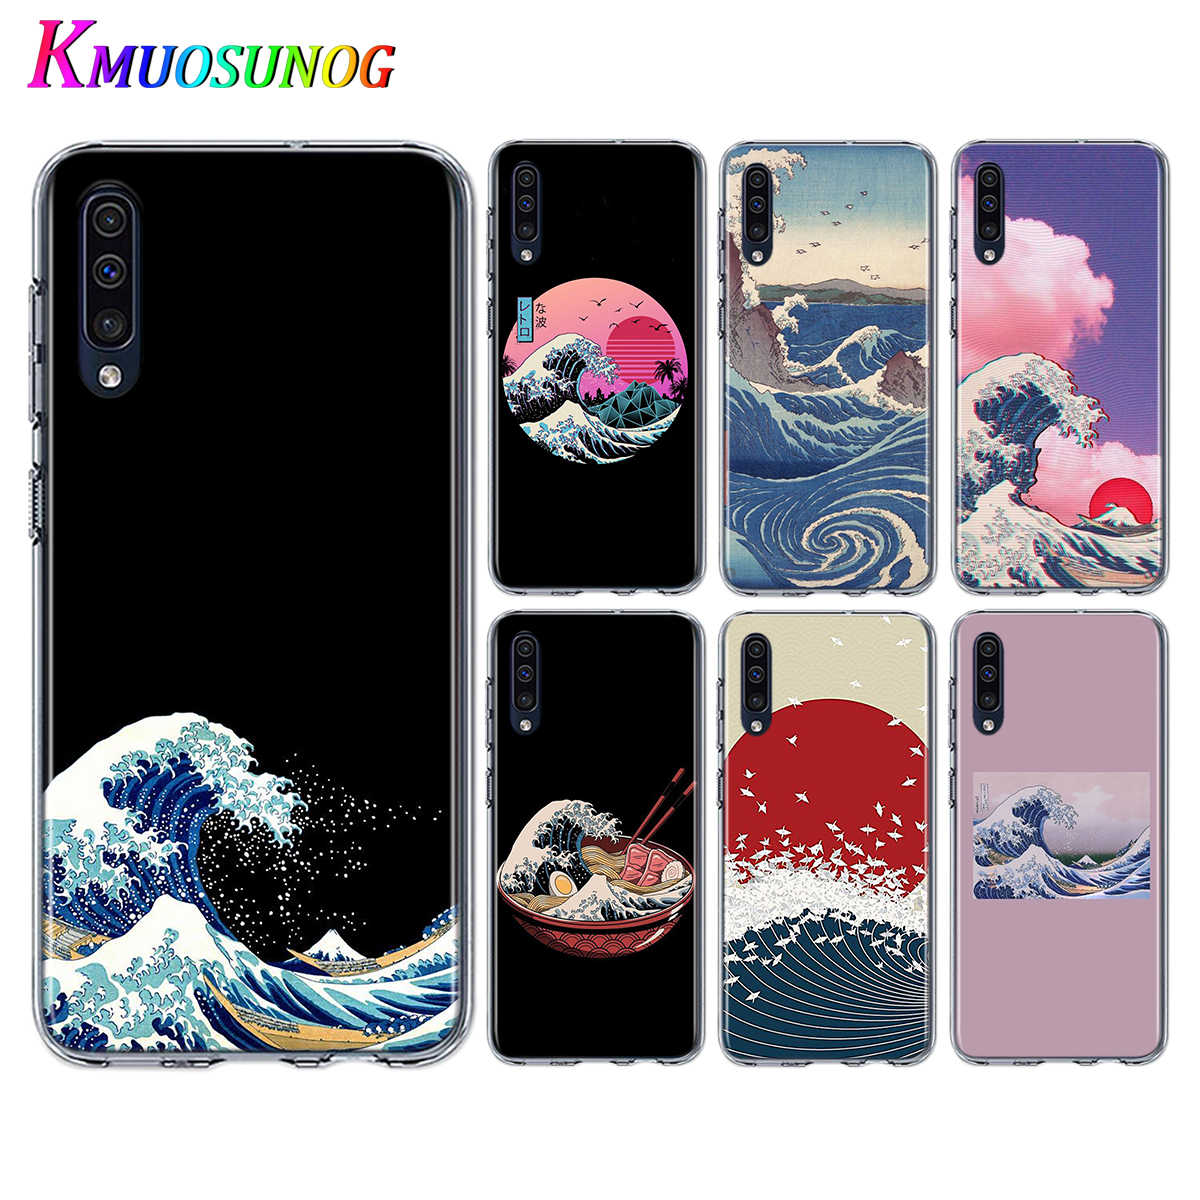 Soft TPU Phone Cover The Great Wave off Kanagawa for Samsung Galaxy A90 A80 A70S A70 A60 A50S A40 A20E A20 A10S Phone Case